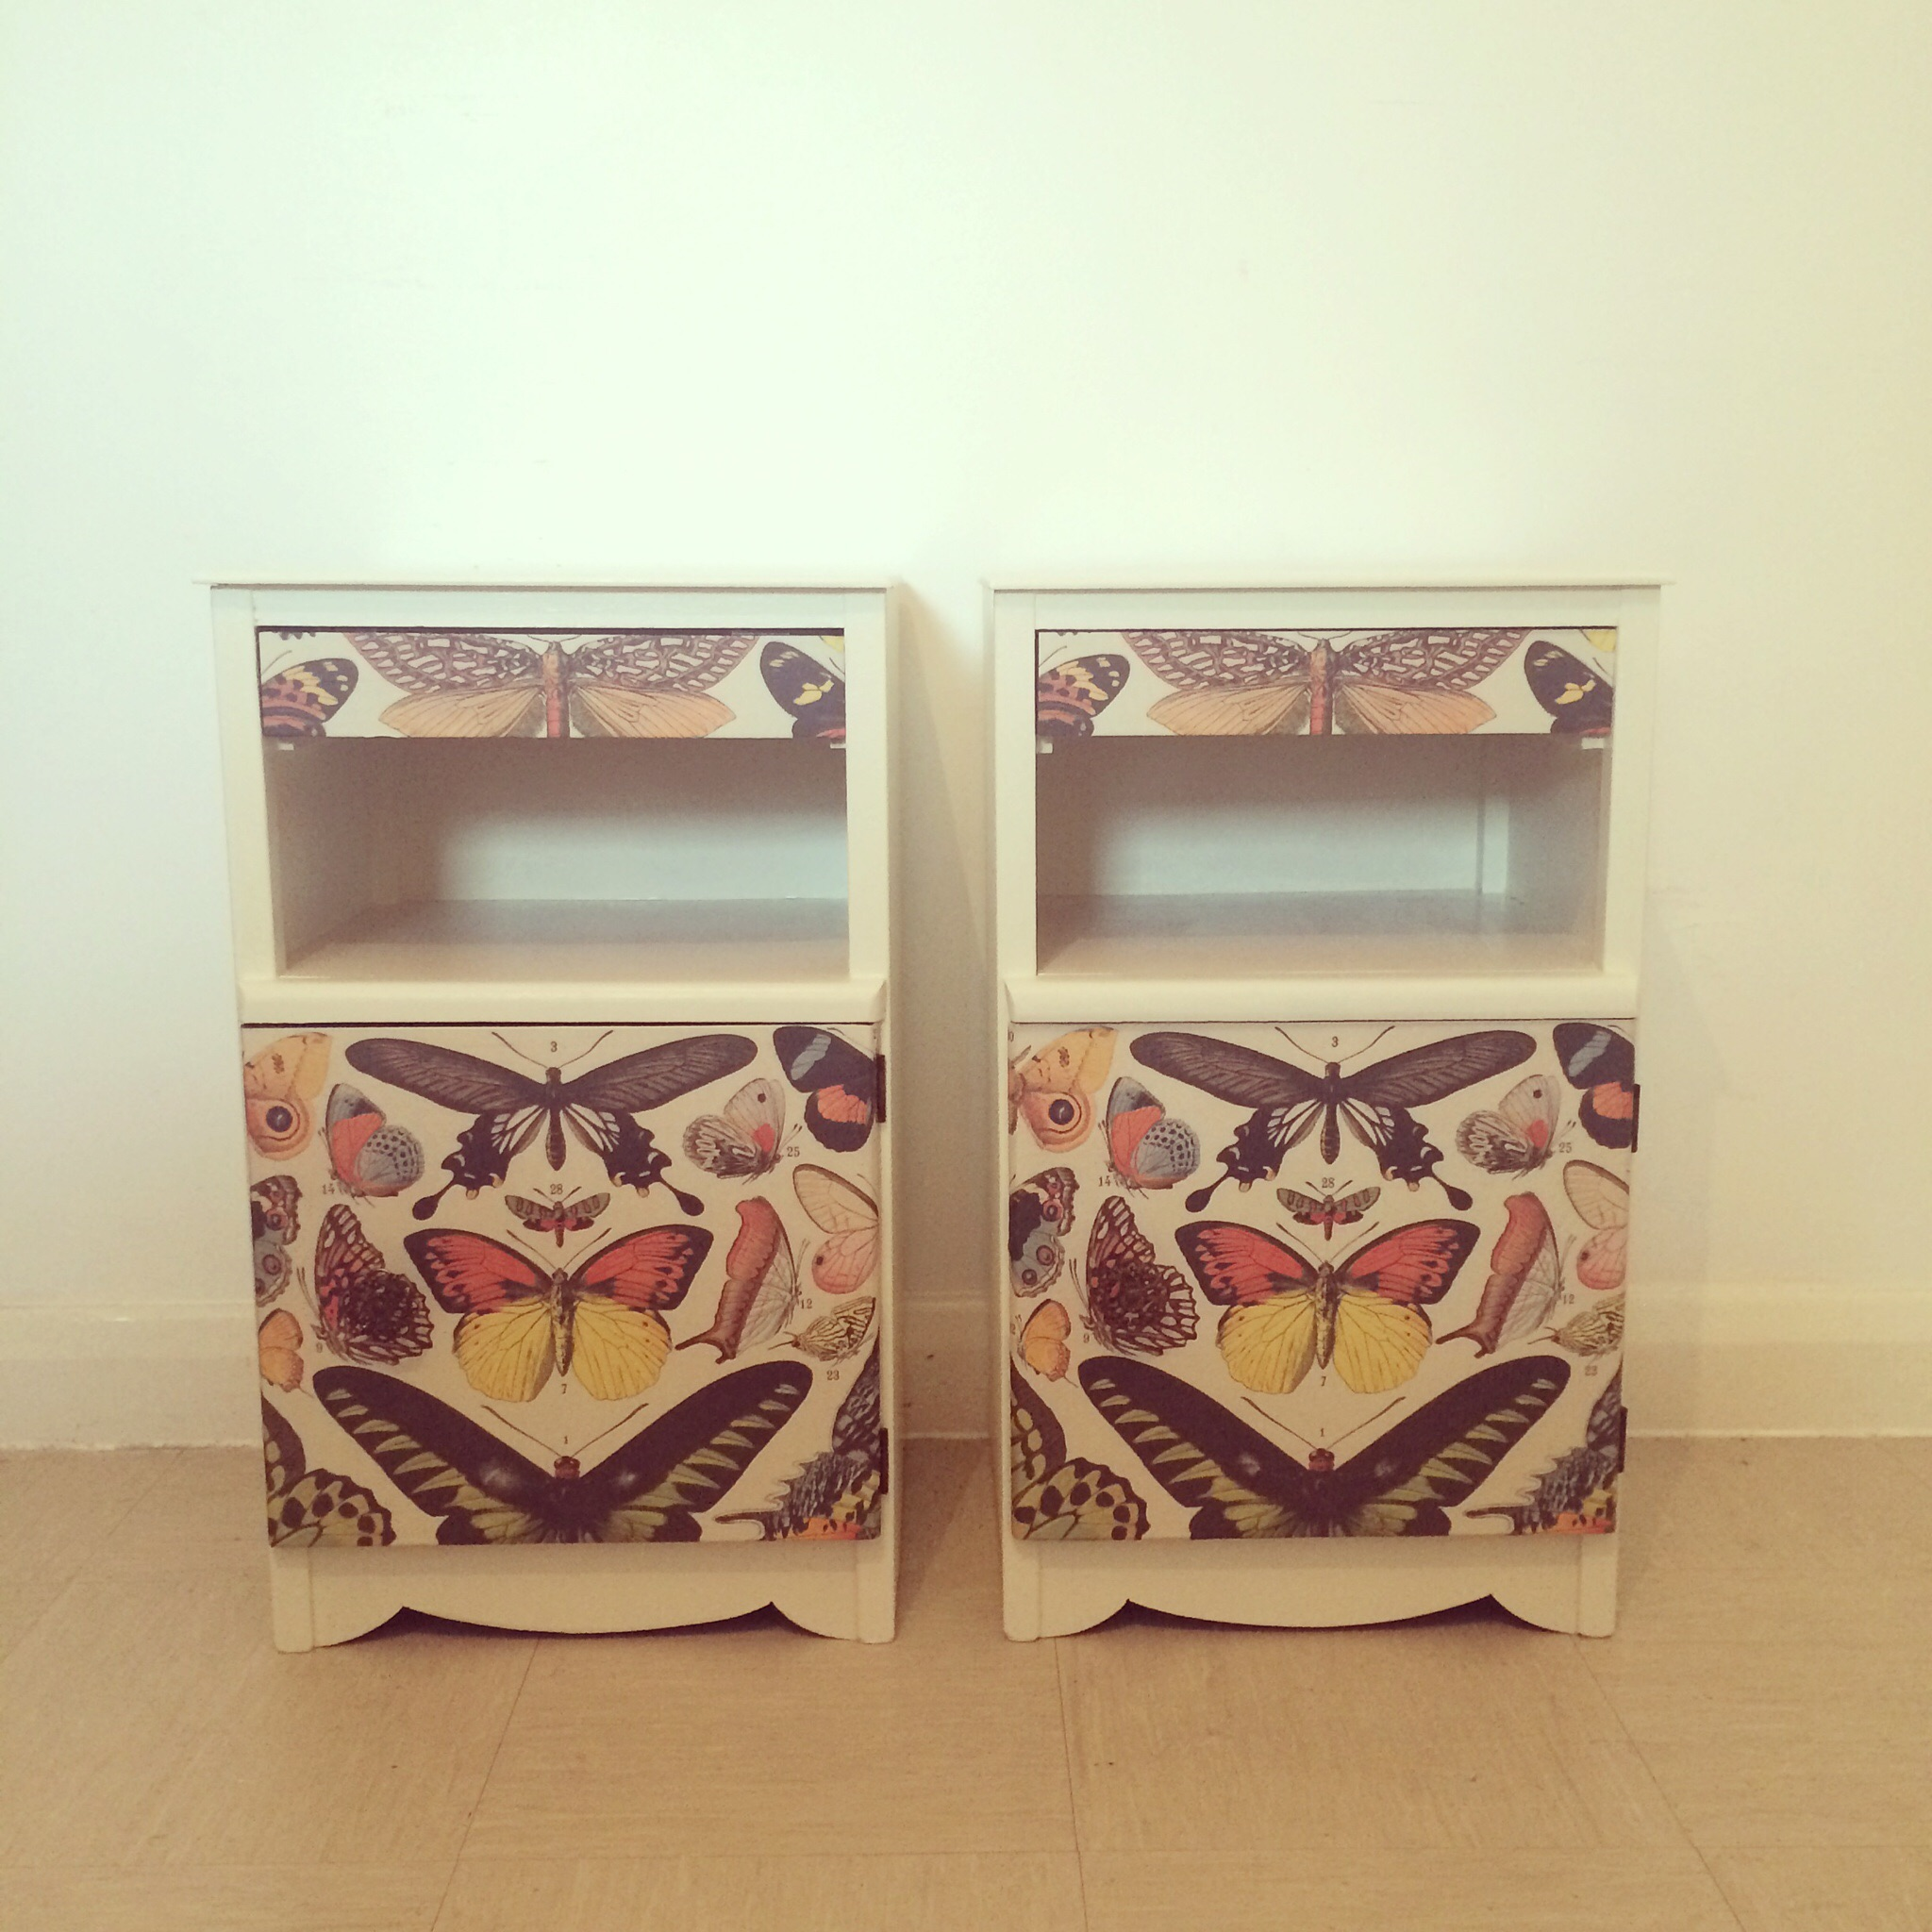 Upcycled butterfly charts bedside cabinets.